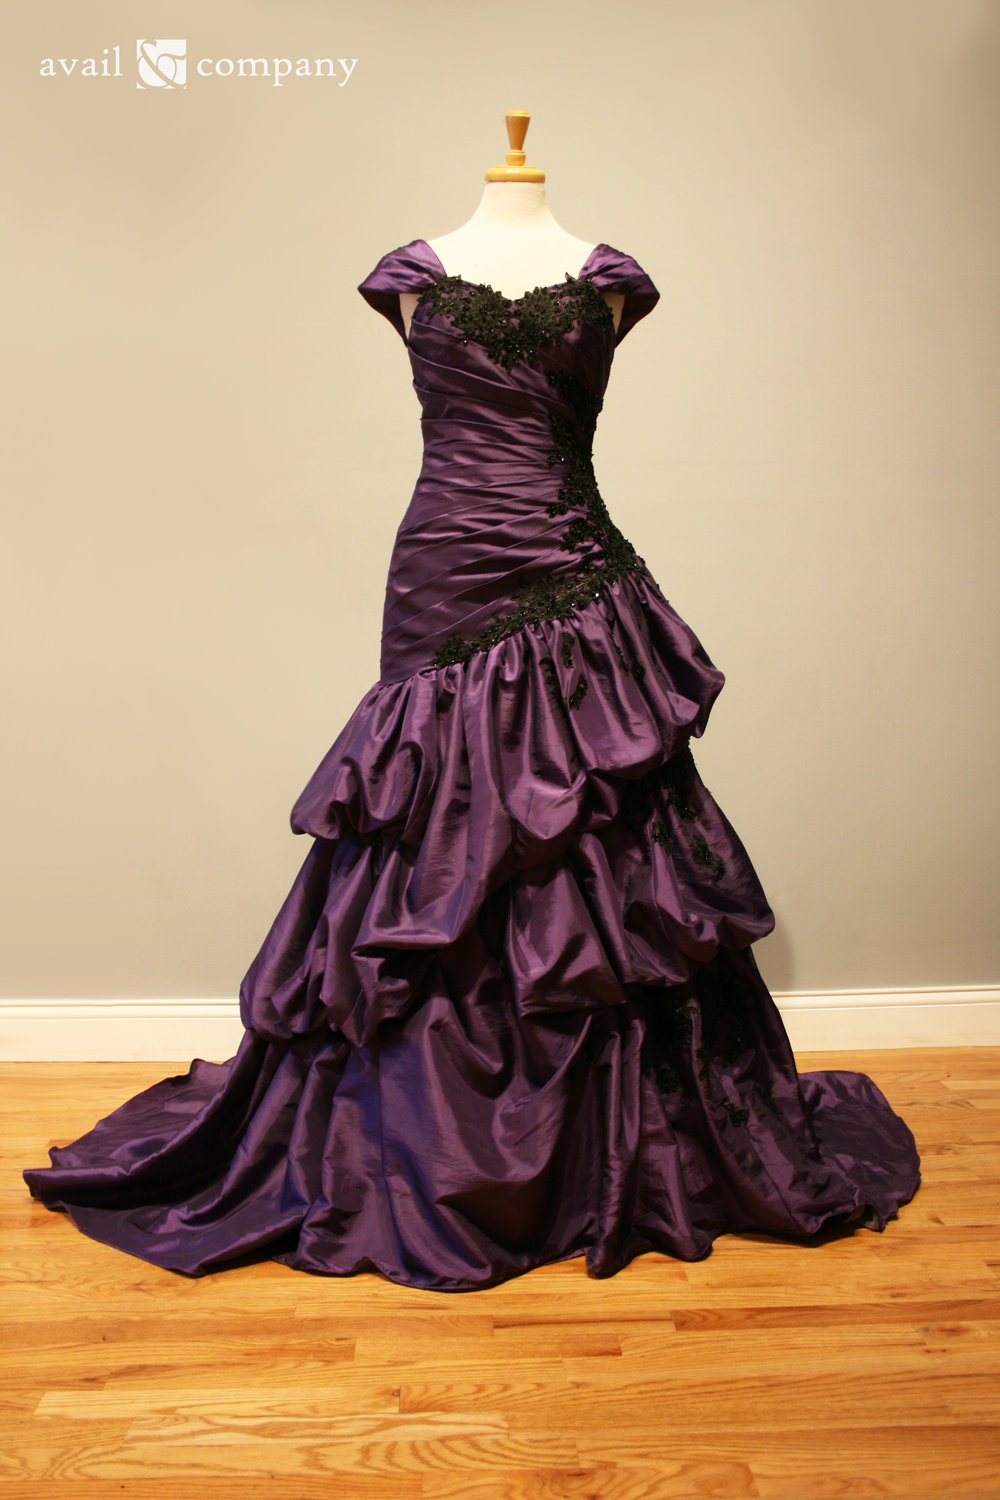 !Purple Wedding Dress Gothic Black Lace 002-0002.jpg